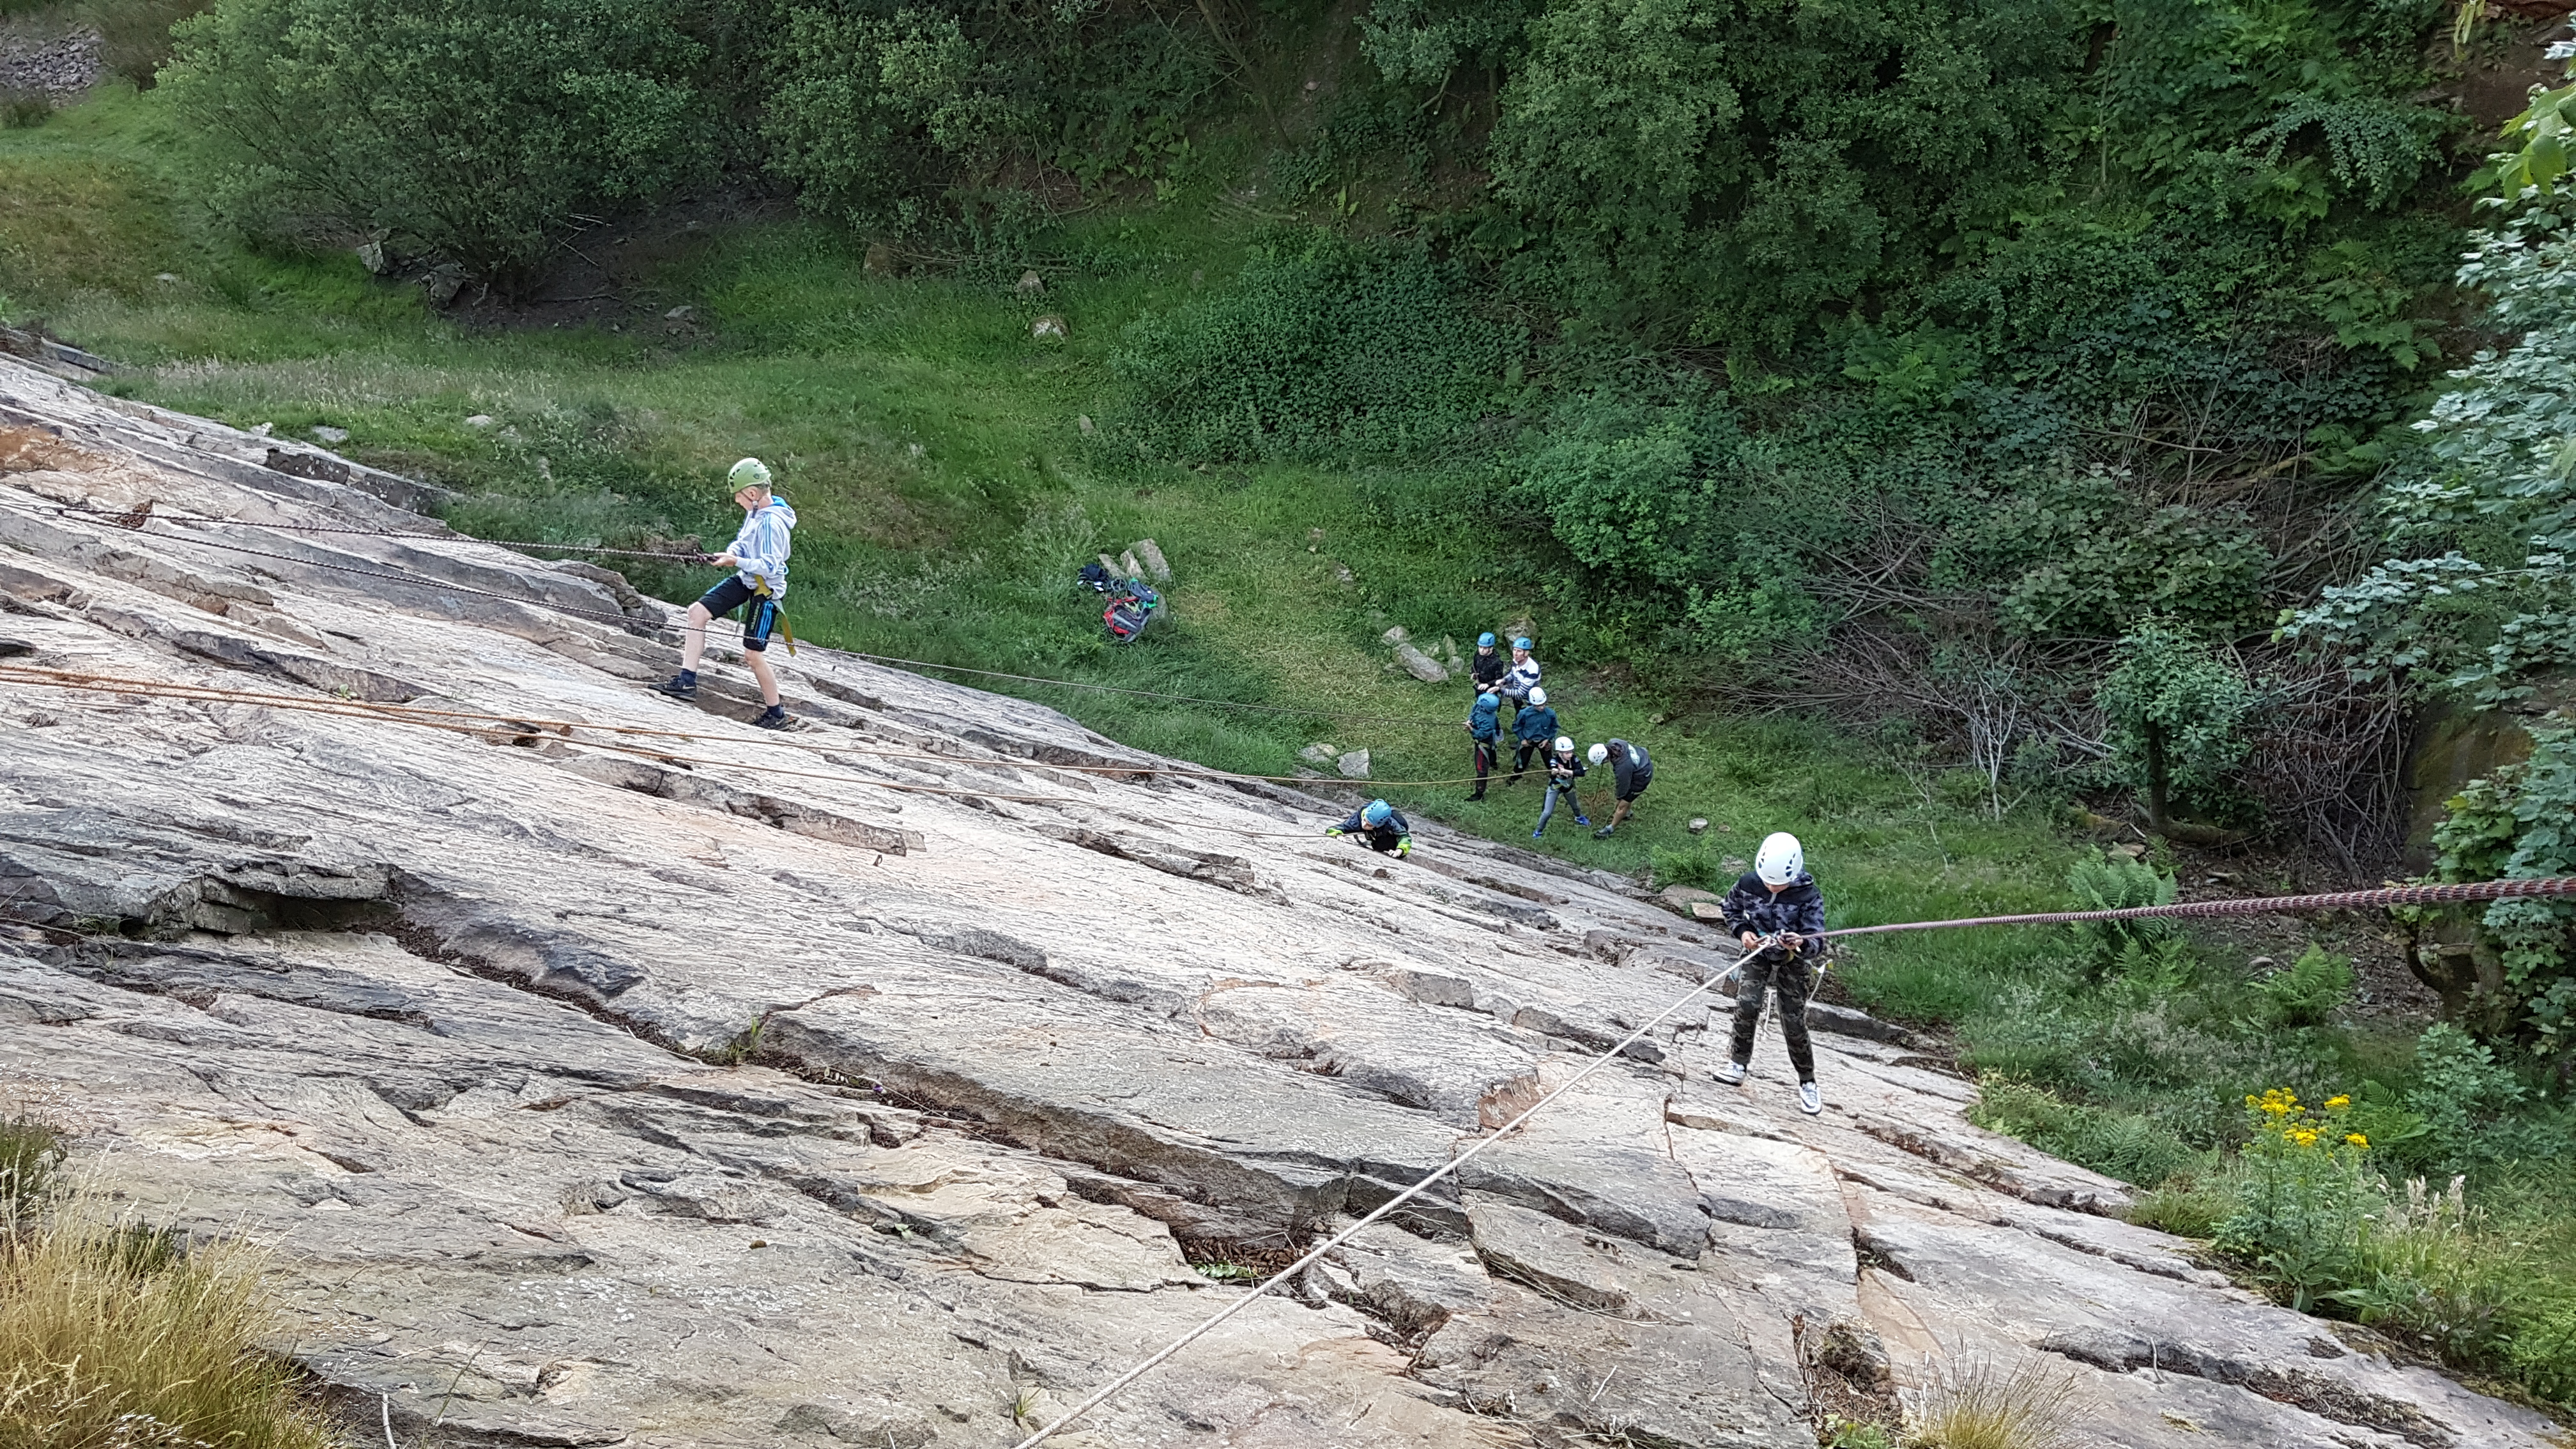 Group climbing session